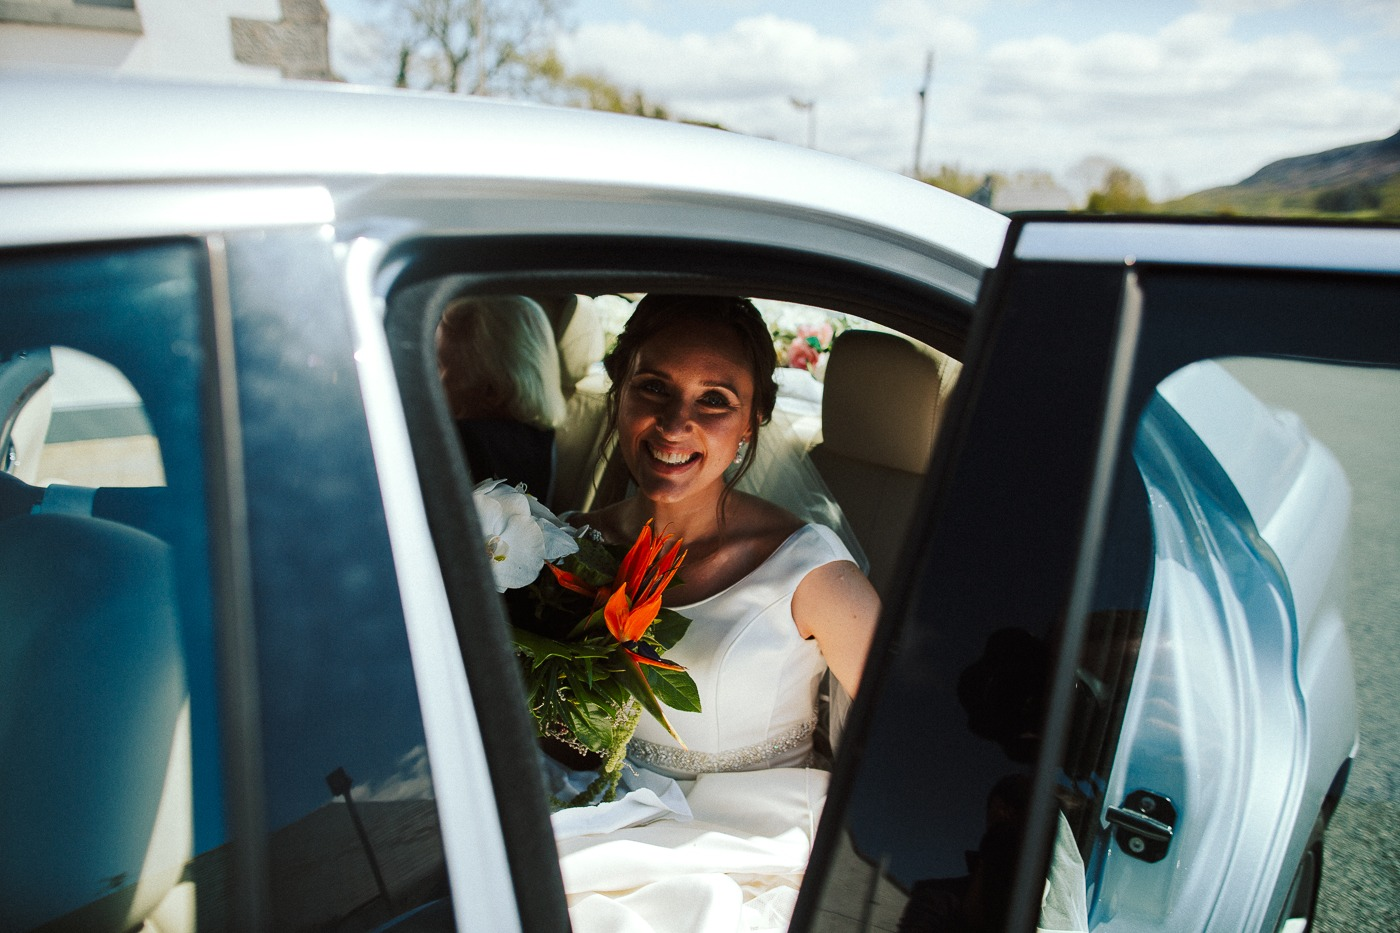 A person sitting in a car